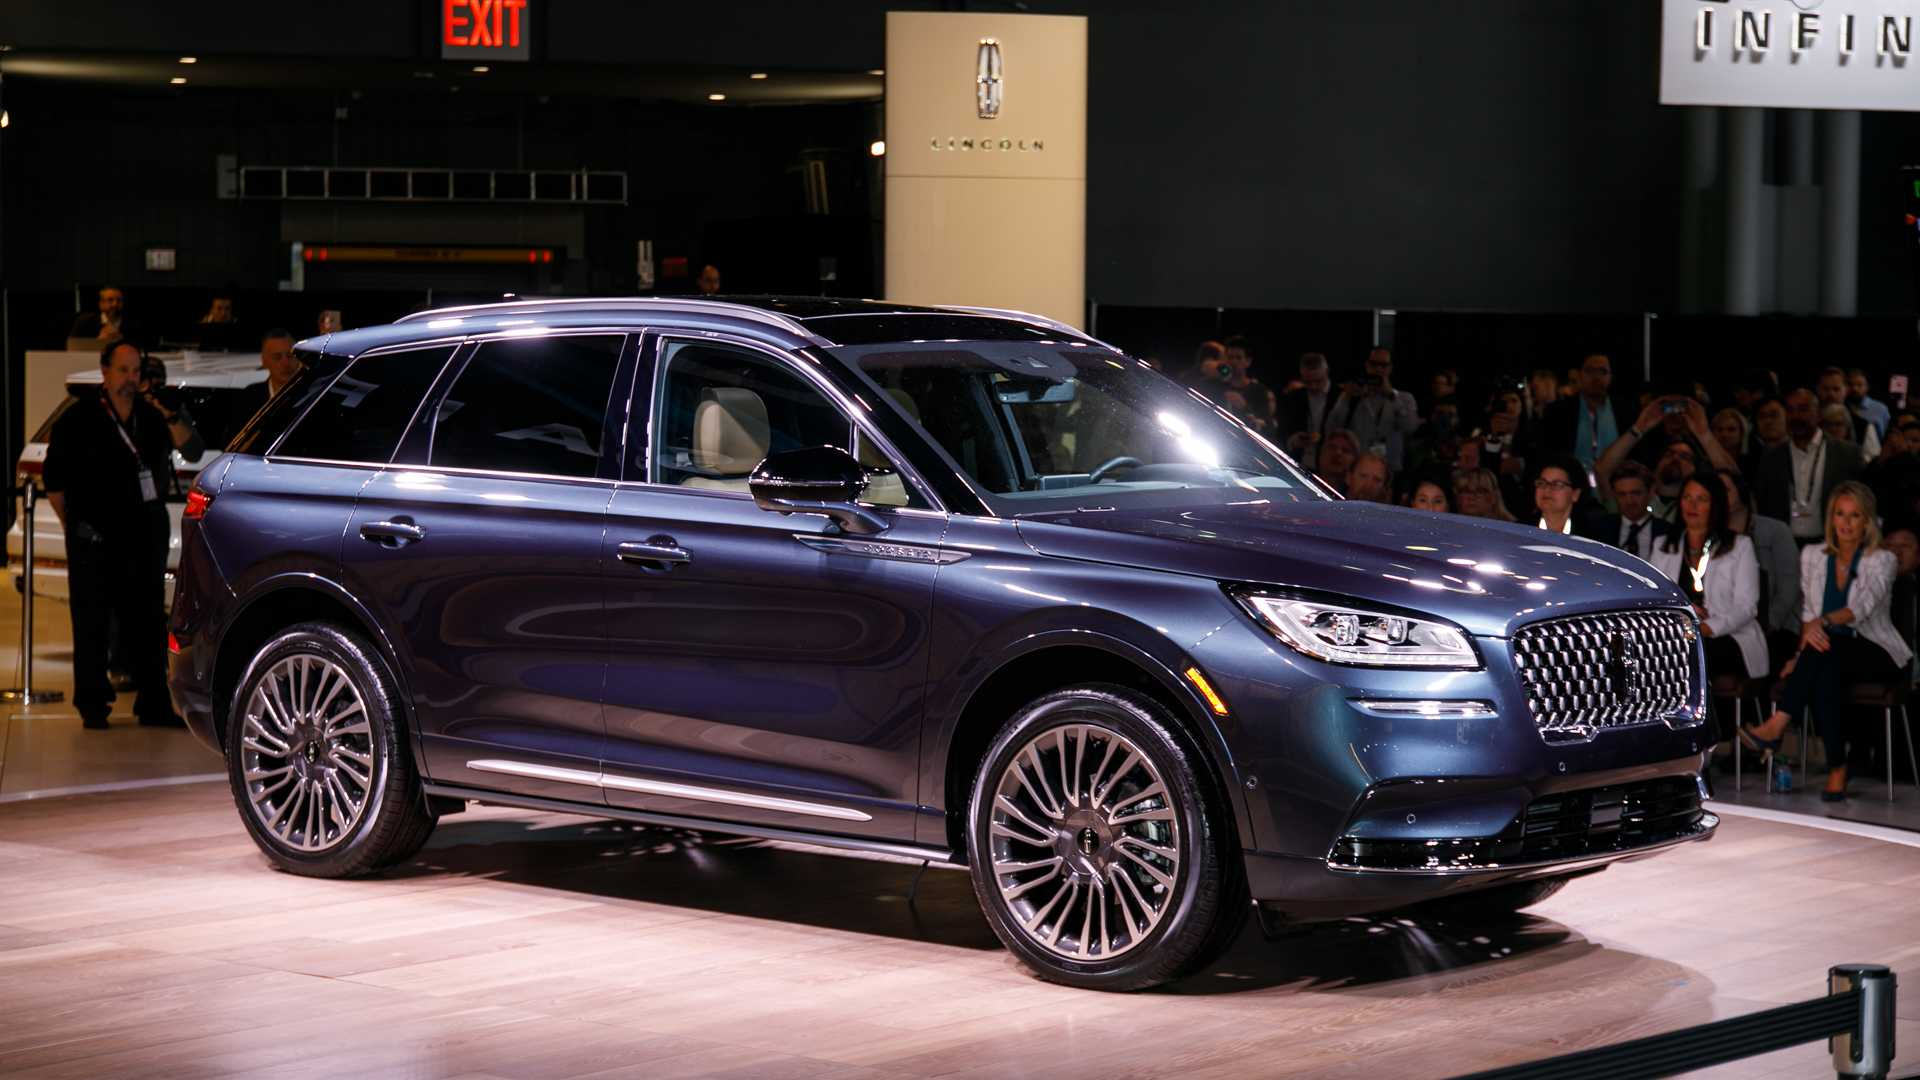 Most Expensive 2020 Lincoln Corsair Costs $60,660